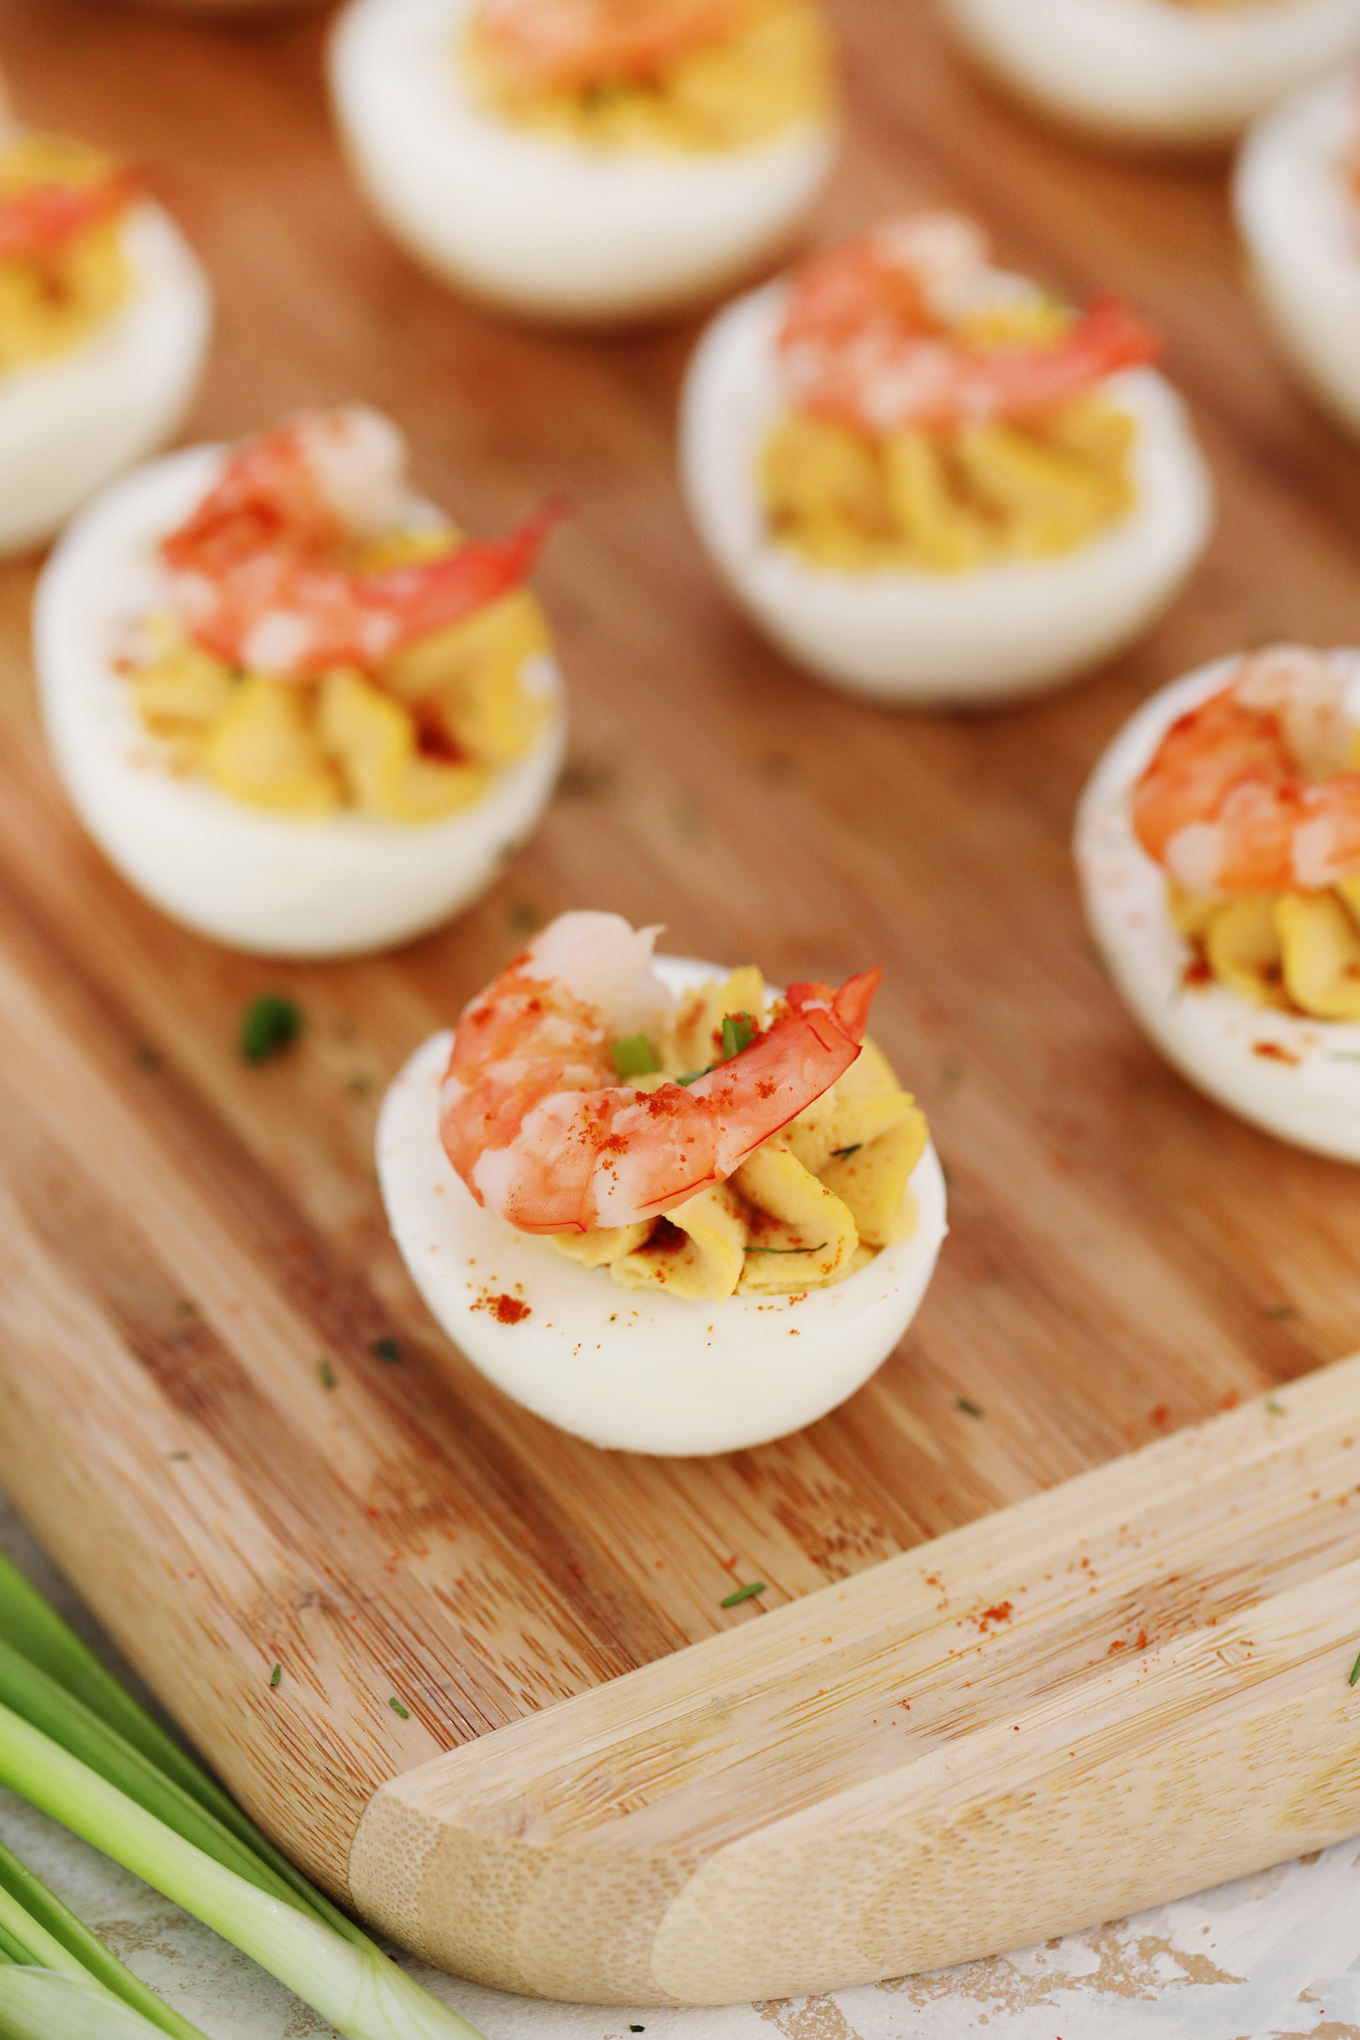 Make-ahead Easter brunch recipes: Deviled eggs with shrimp at Sweet & Savory